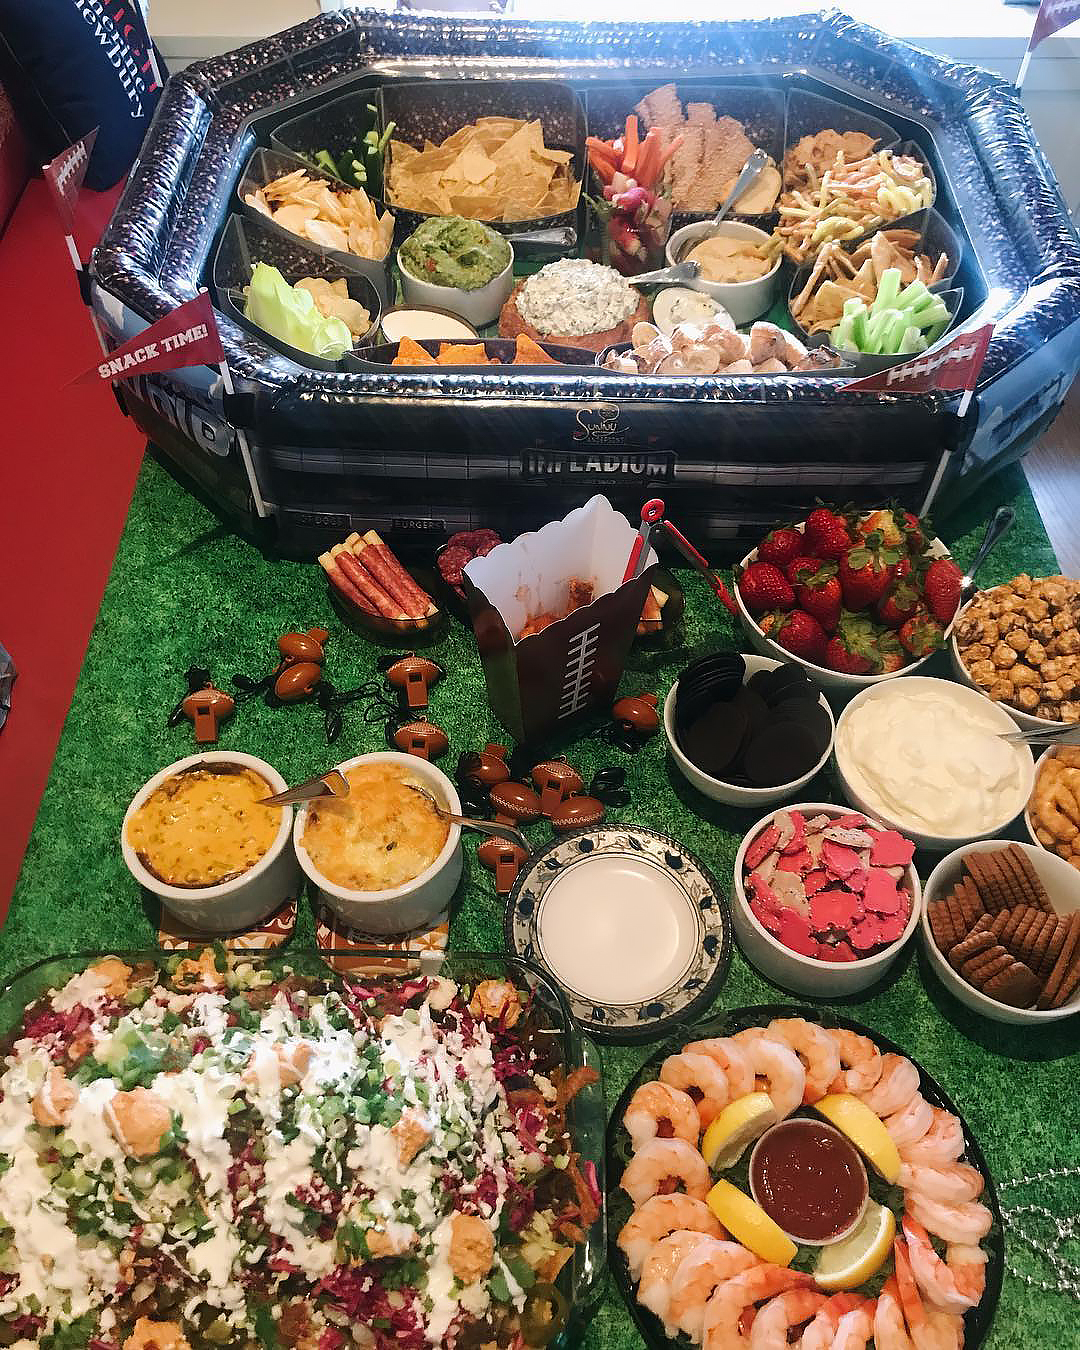 "Kelly Ripa, Bethenny Frankel and More Share Their Super Bowl Sunday Eats - Though the Mindy Project alum revealed on Instagram that she was ""sipping Gatorade"" thanks to a ""poorly timed stomach bug,"" that didn't stop her from bringing in a private chef to whip up a drool-worthy Super Bowl spread. ""Notice the inflatable football stadium that housed dips and snacks,"" the Ocean's 8 star wrote on Instagram."